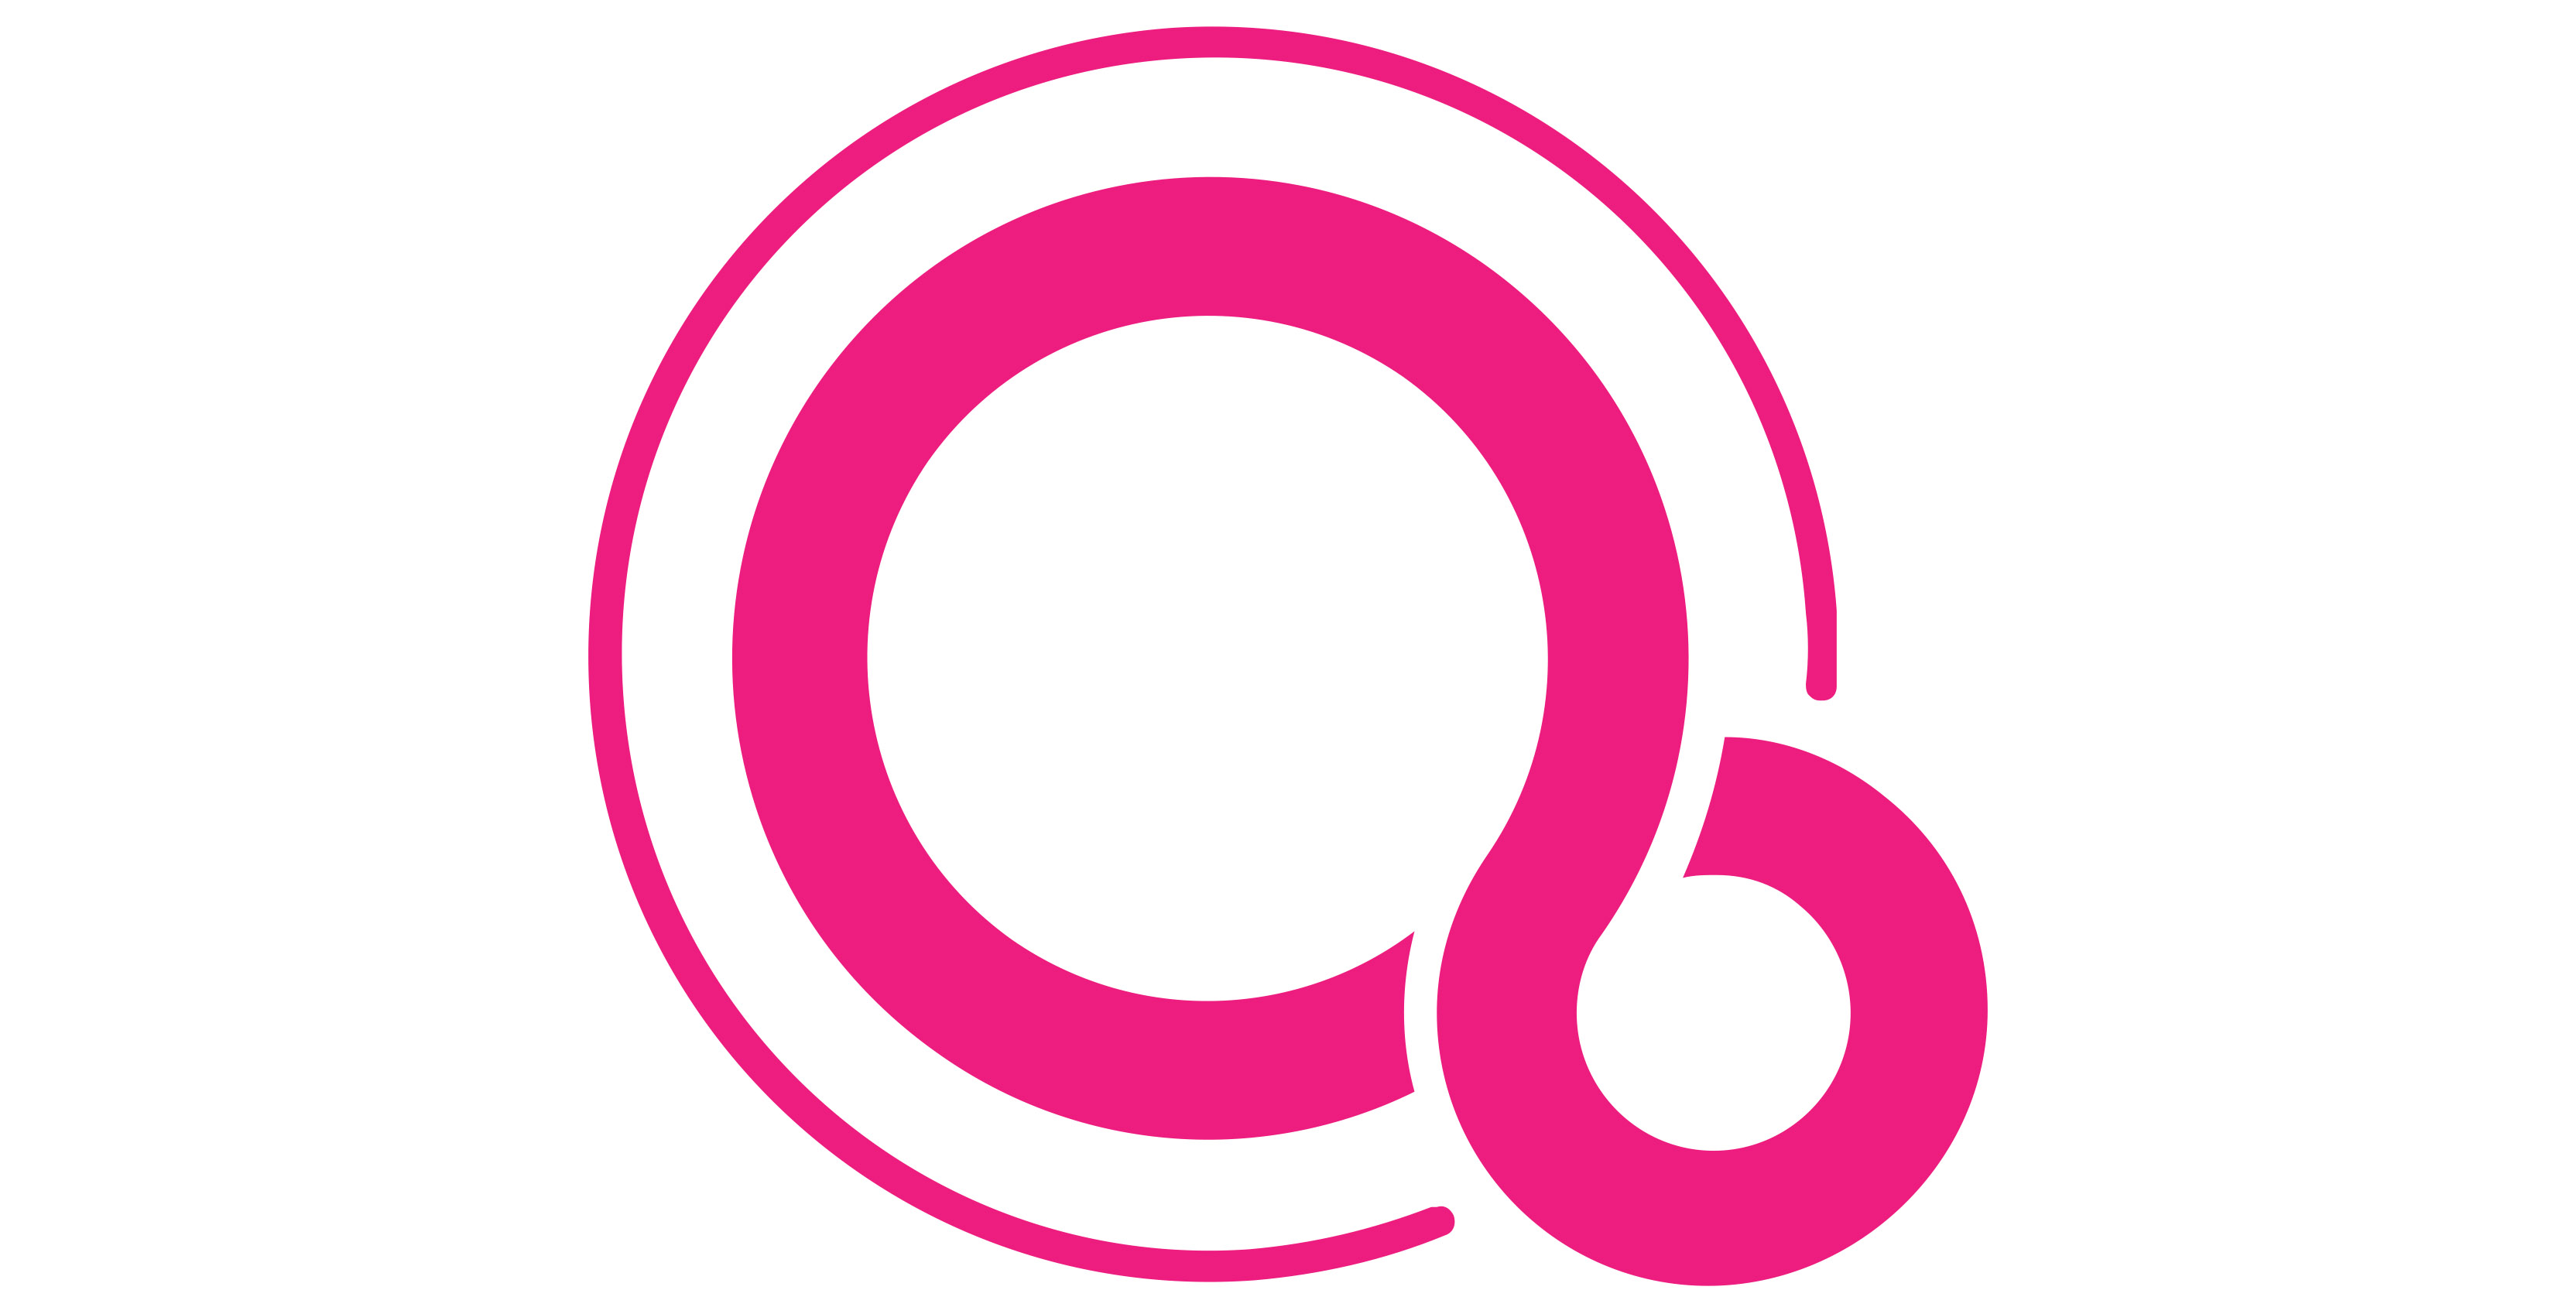 Google's upcoming Fuchsia OS will support Android apps